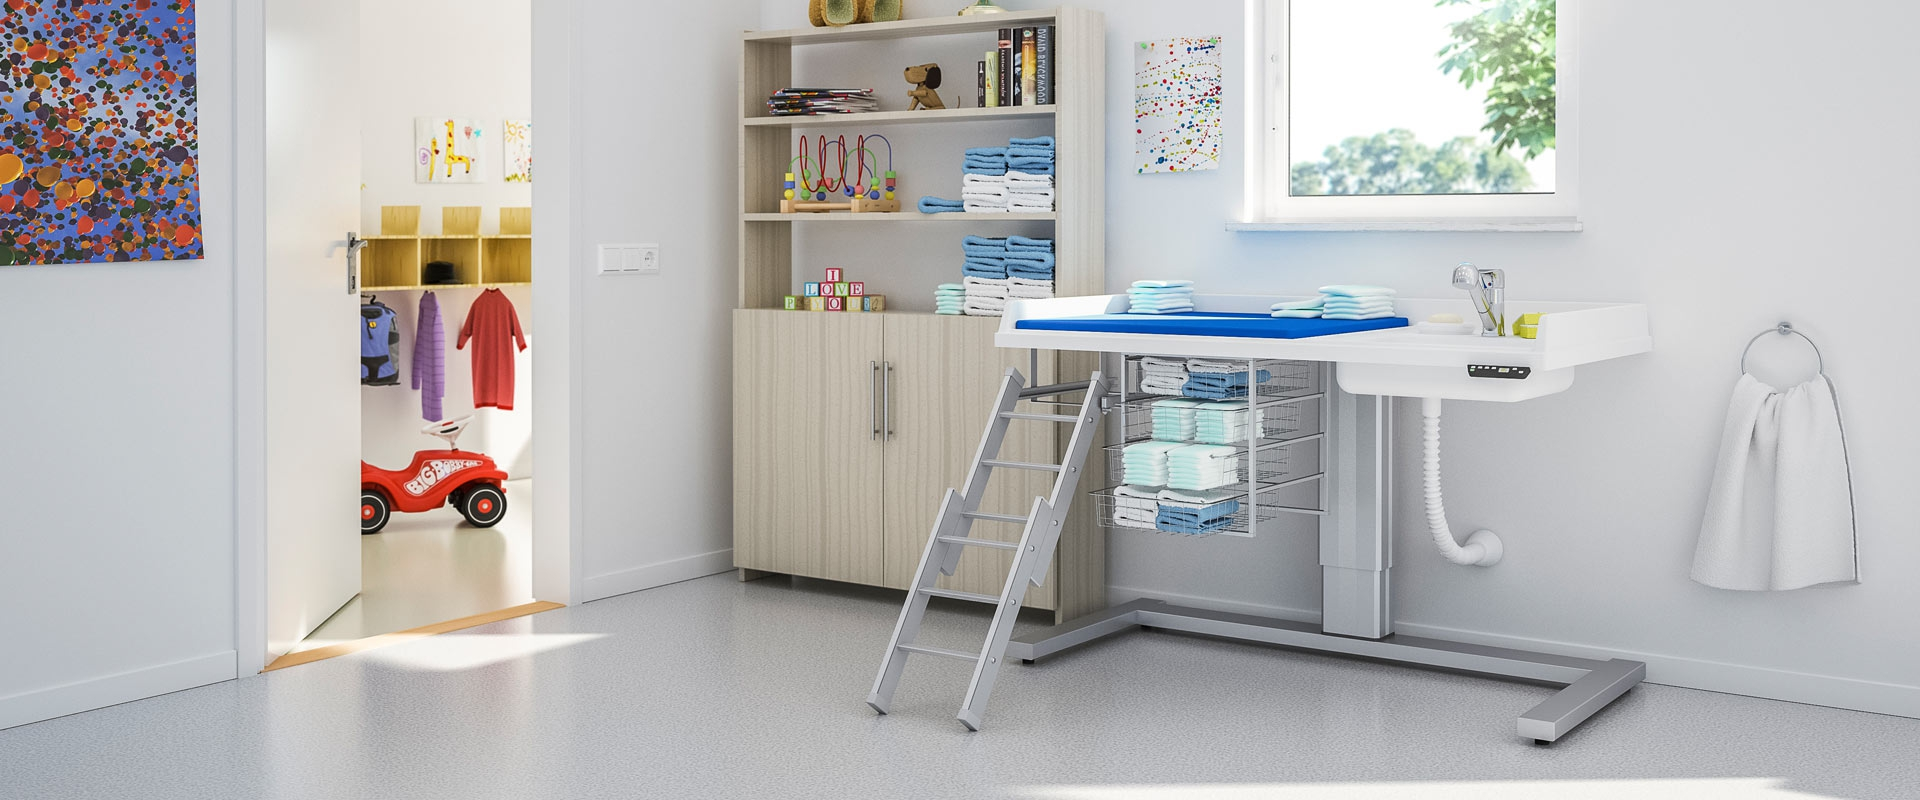 Height adjustable baby changing table 333-141